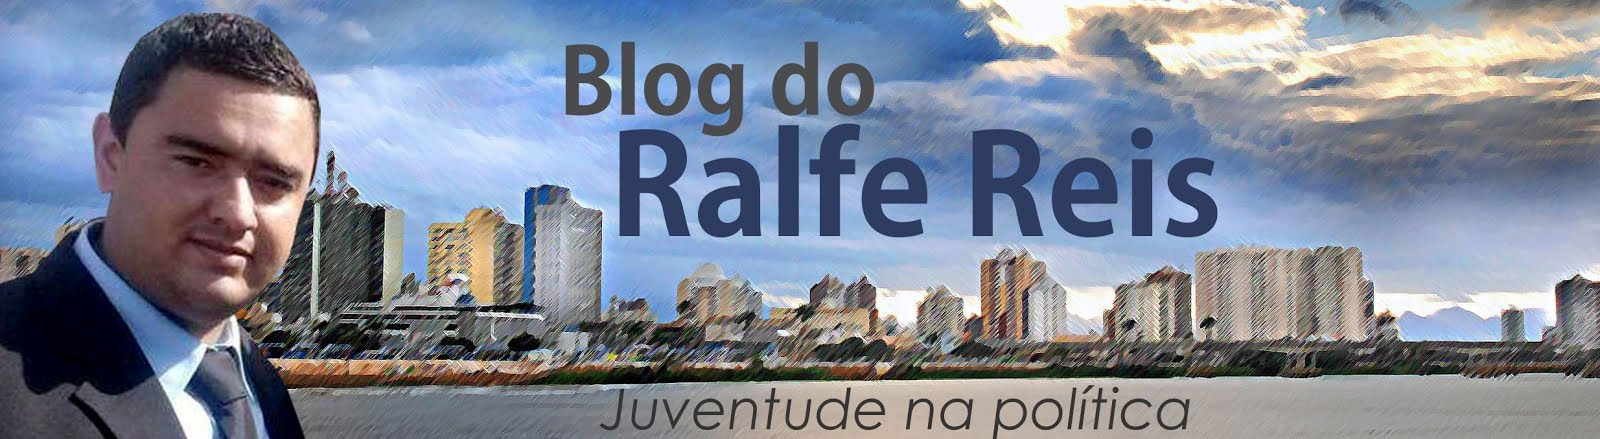 Blog do Ralfe Reis